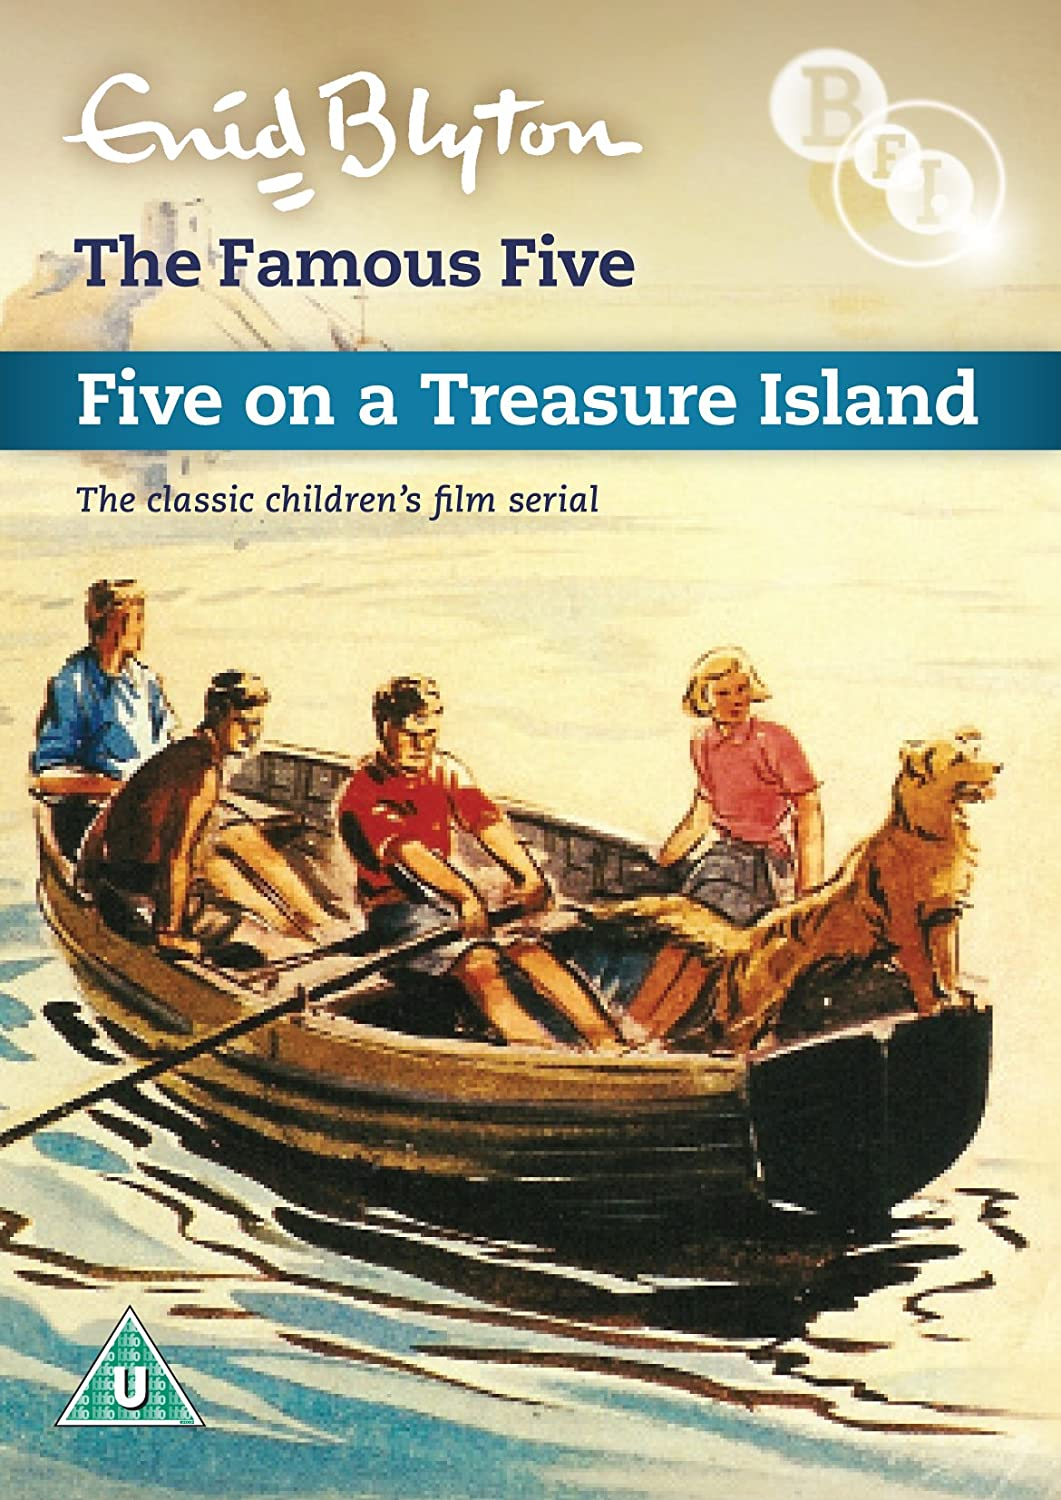 enid blyton s the famous five five on treasure island dvd enid blyton s the famous five five on treasure island dvd amazon co uk rel grainer richard palmer gillian harrison john baily robert cawdron